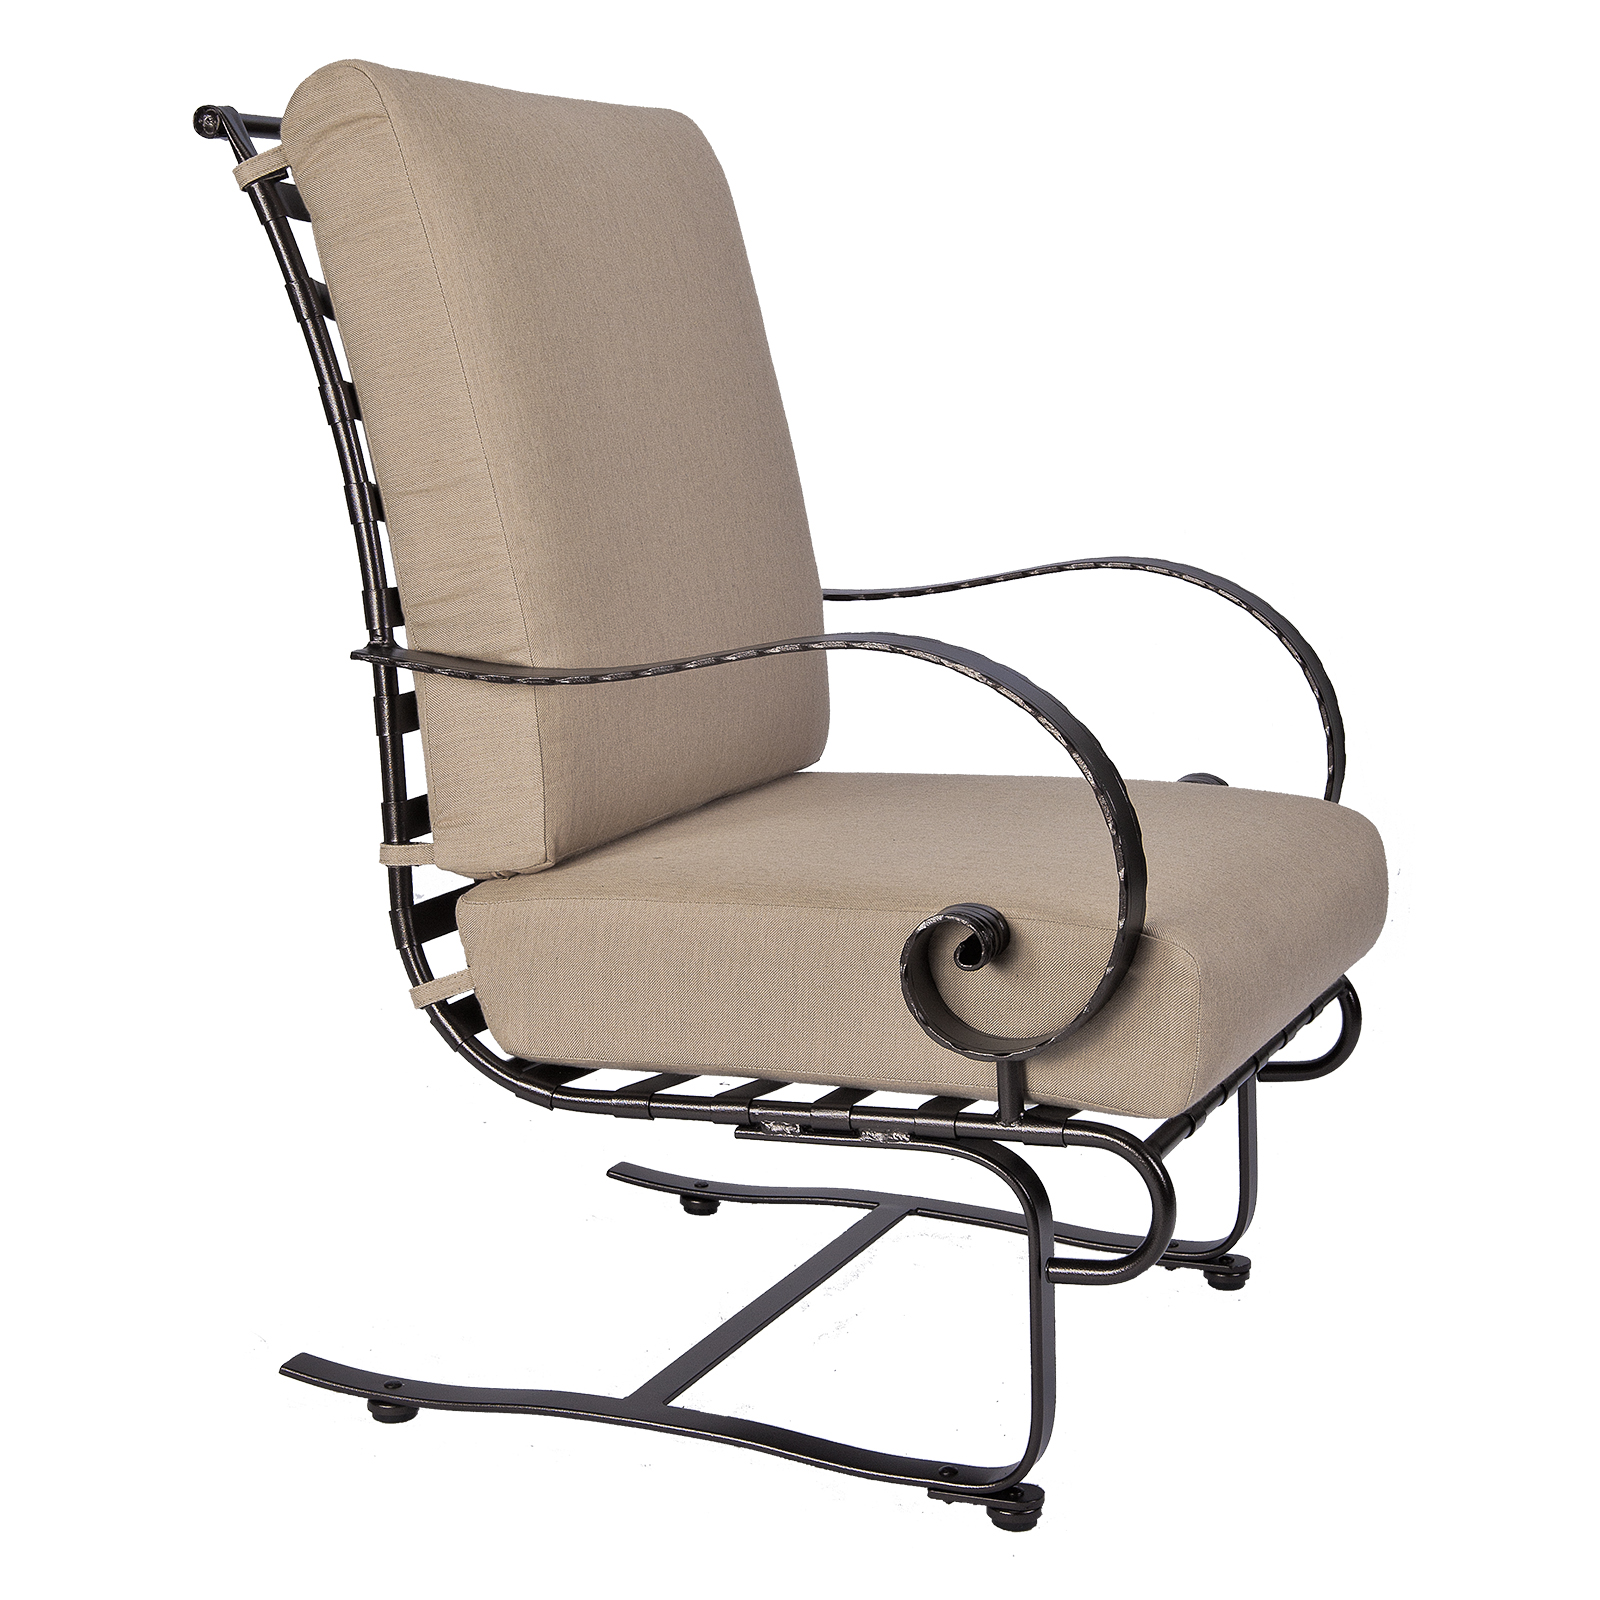 High-Back-Spring-Base-Lounge-Chair-937-SBW_Catalog_GR35_1600-Classico-W-OW-Lee